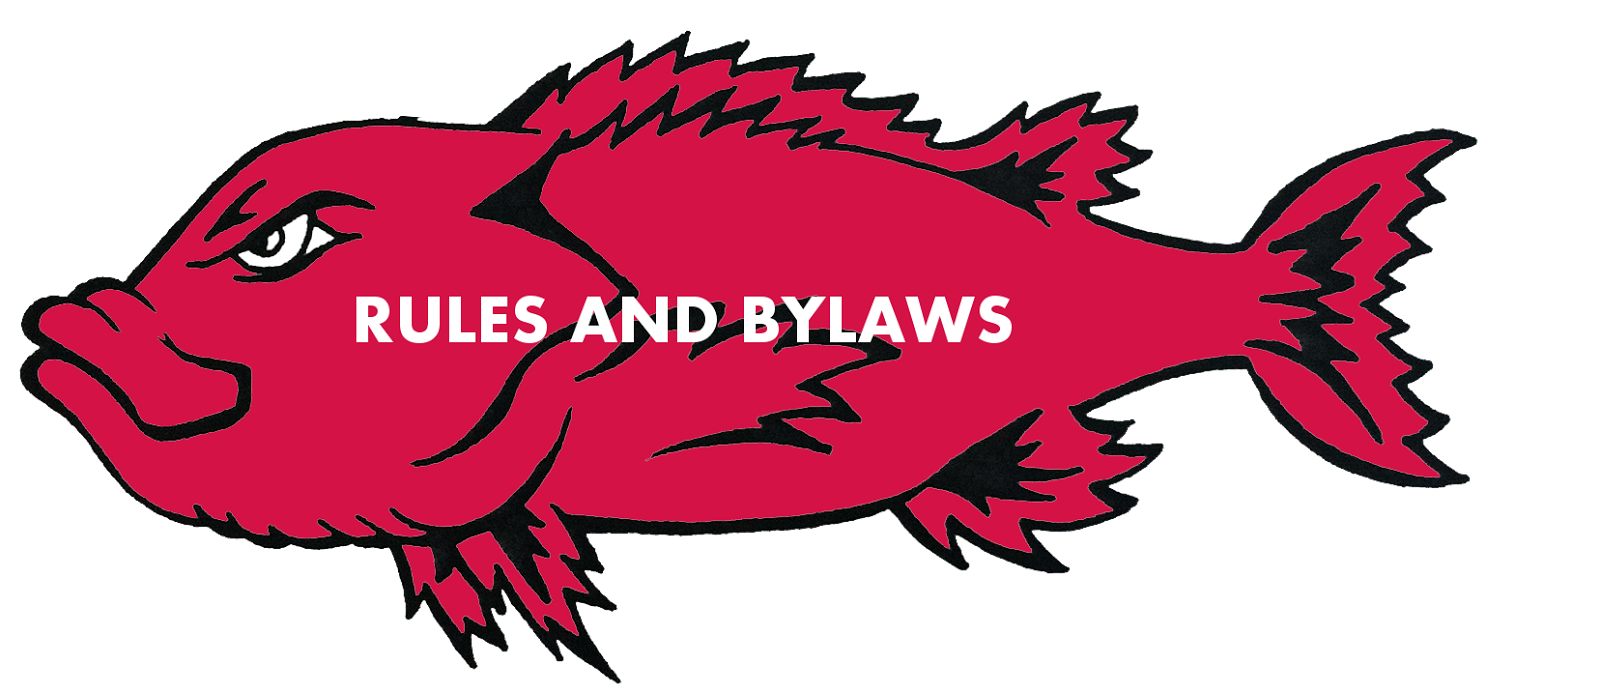 Rules/Bylaws